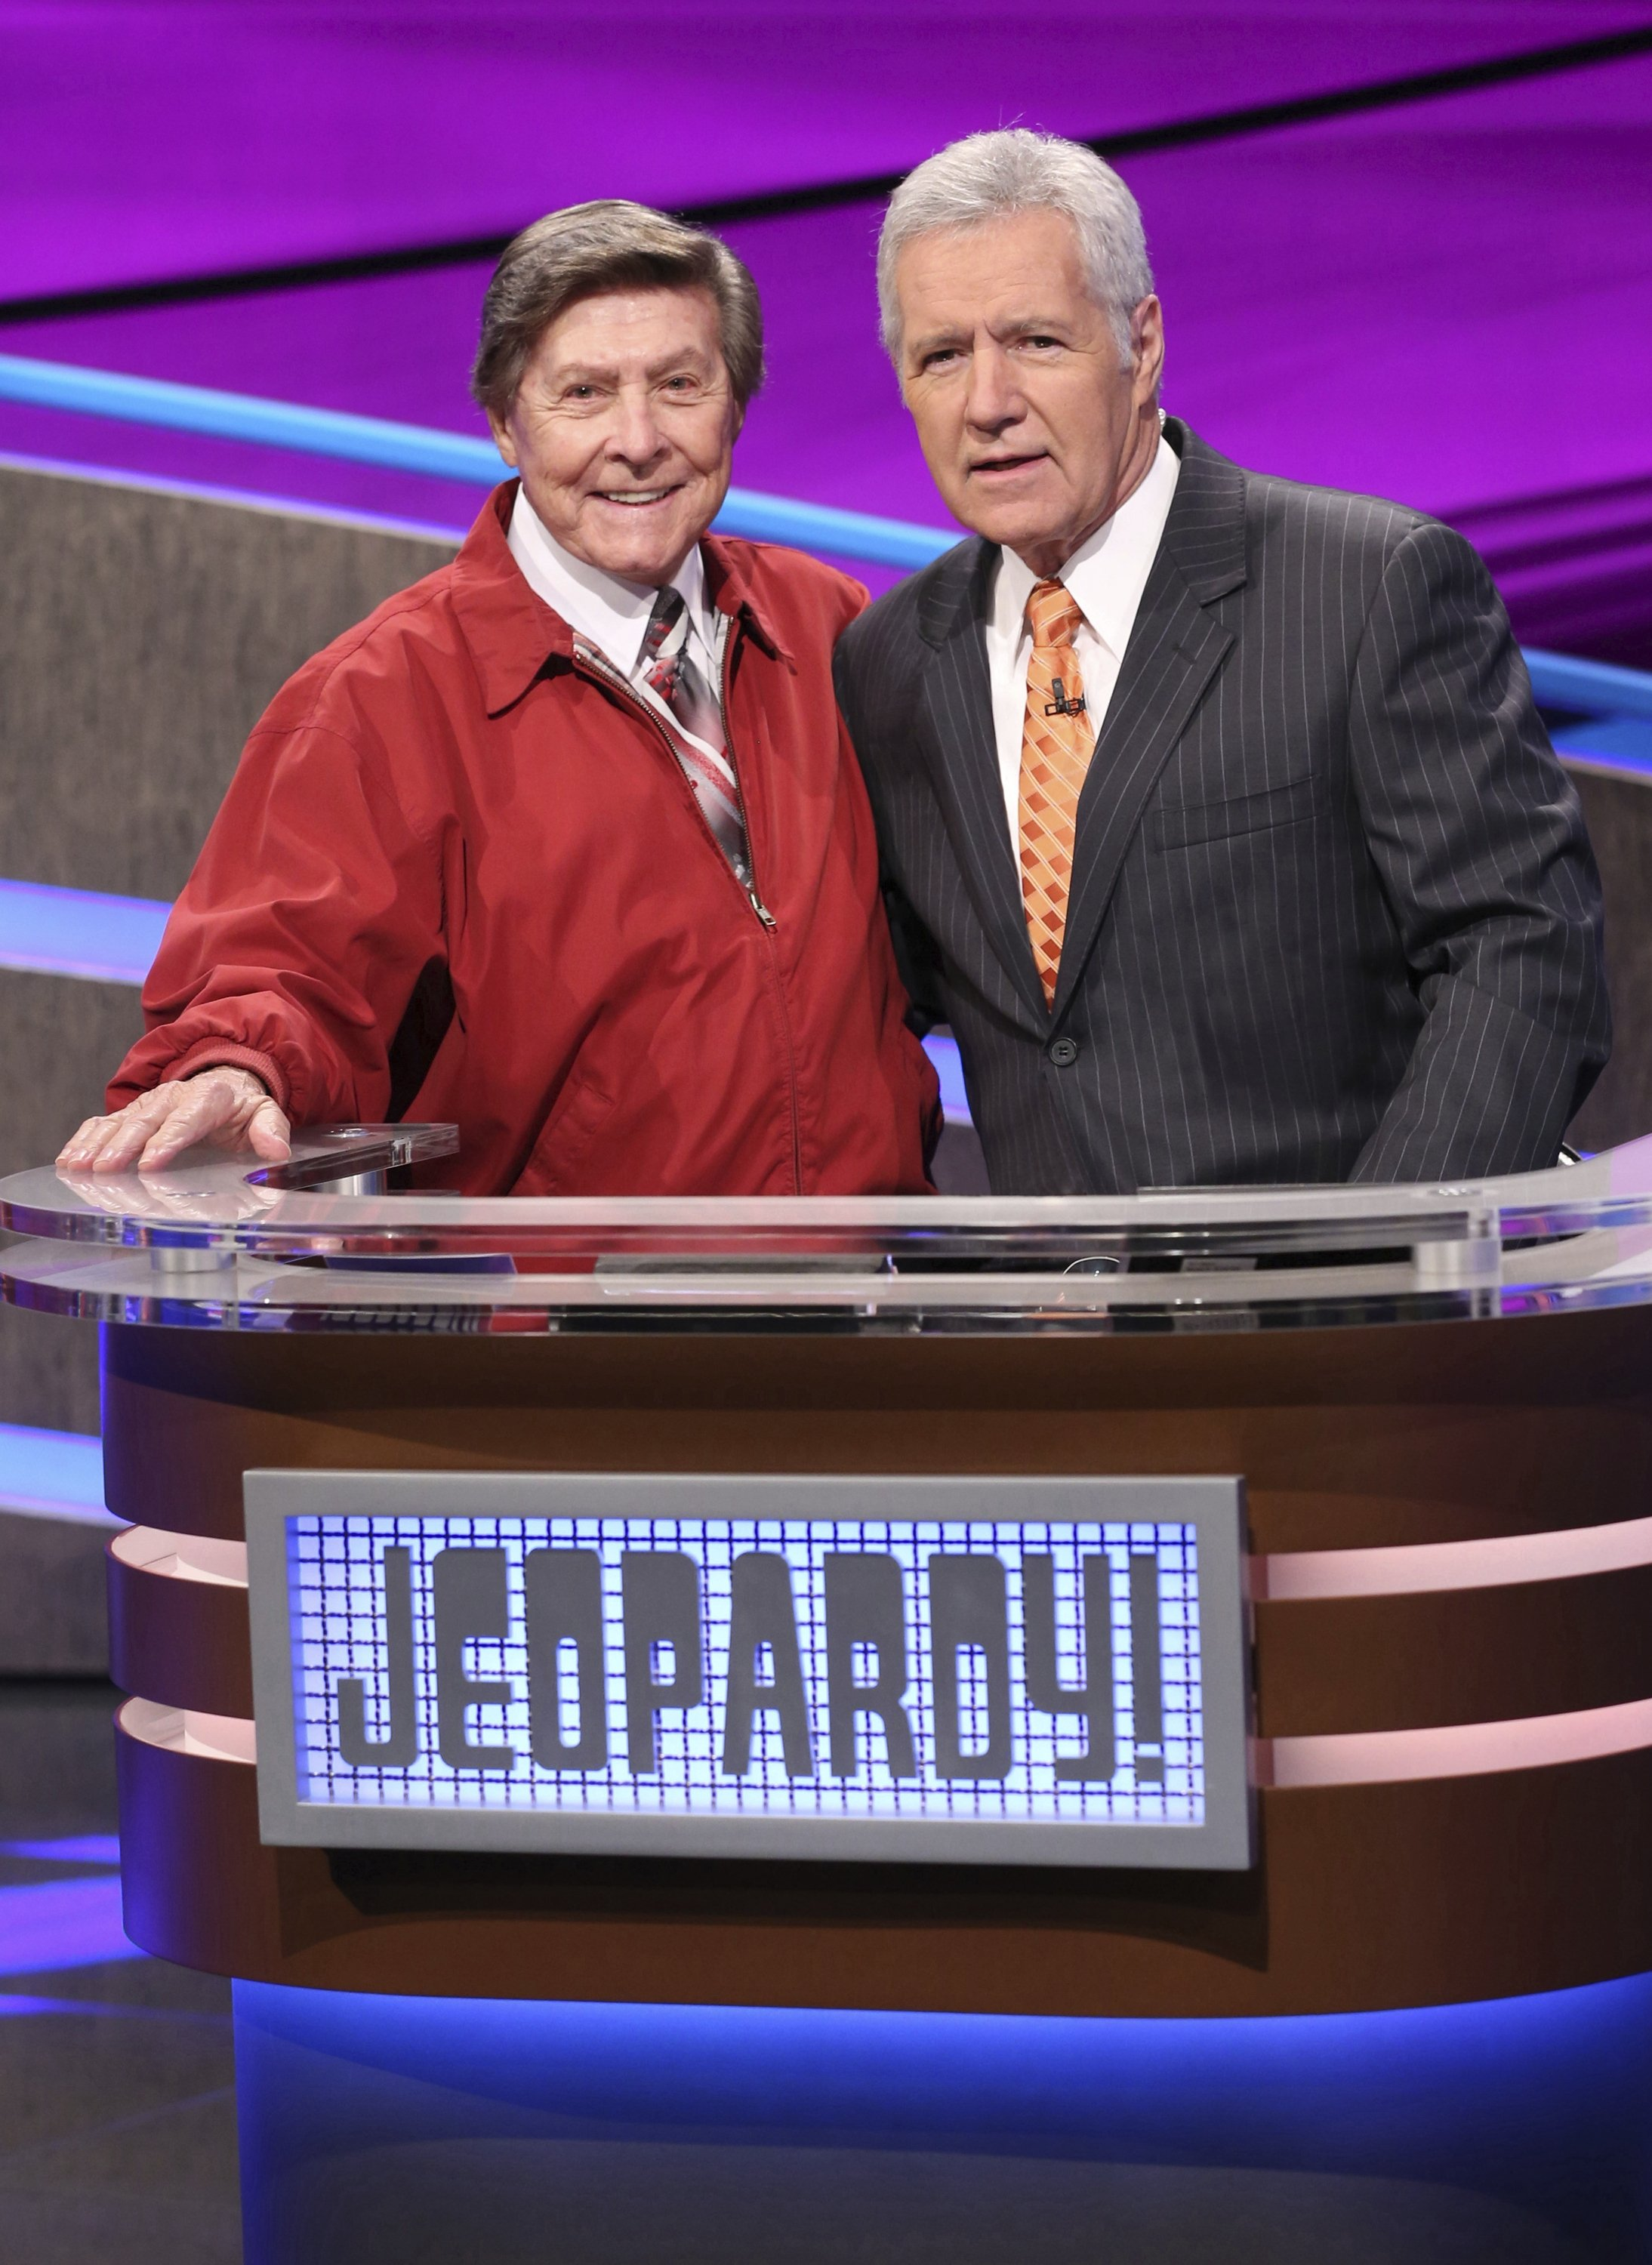 In this 2014 image provided by Jeopardy Productions, Inc., show announcer Johnny Gilbert (L) and game show host Alex Trebek appear on the set of 'Jeopardy!'  (Carol Kaelson/Jeopardy Productions, Inc. via AP)